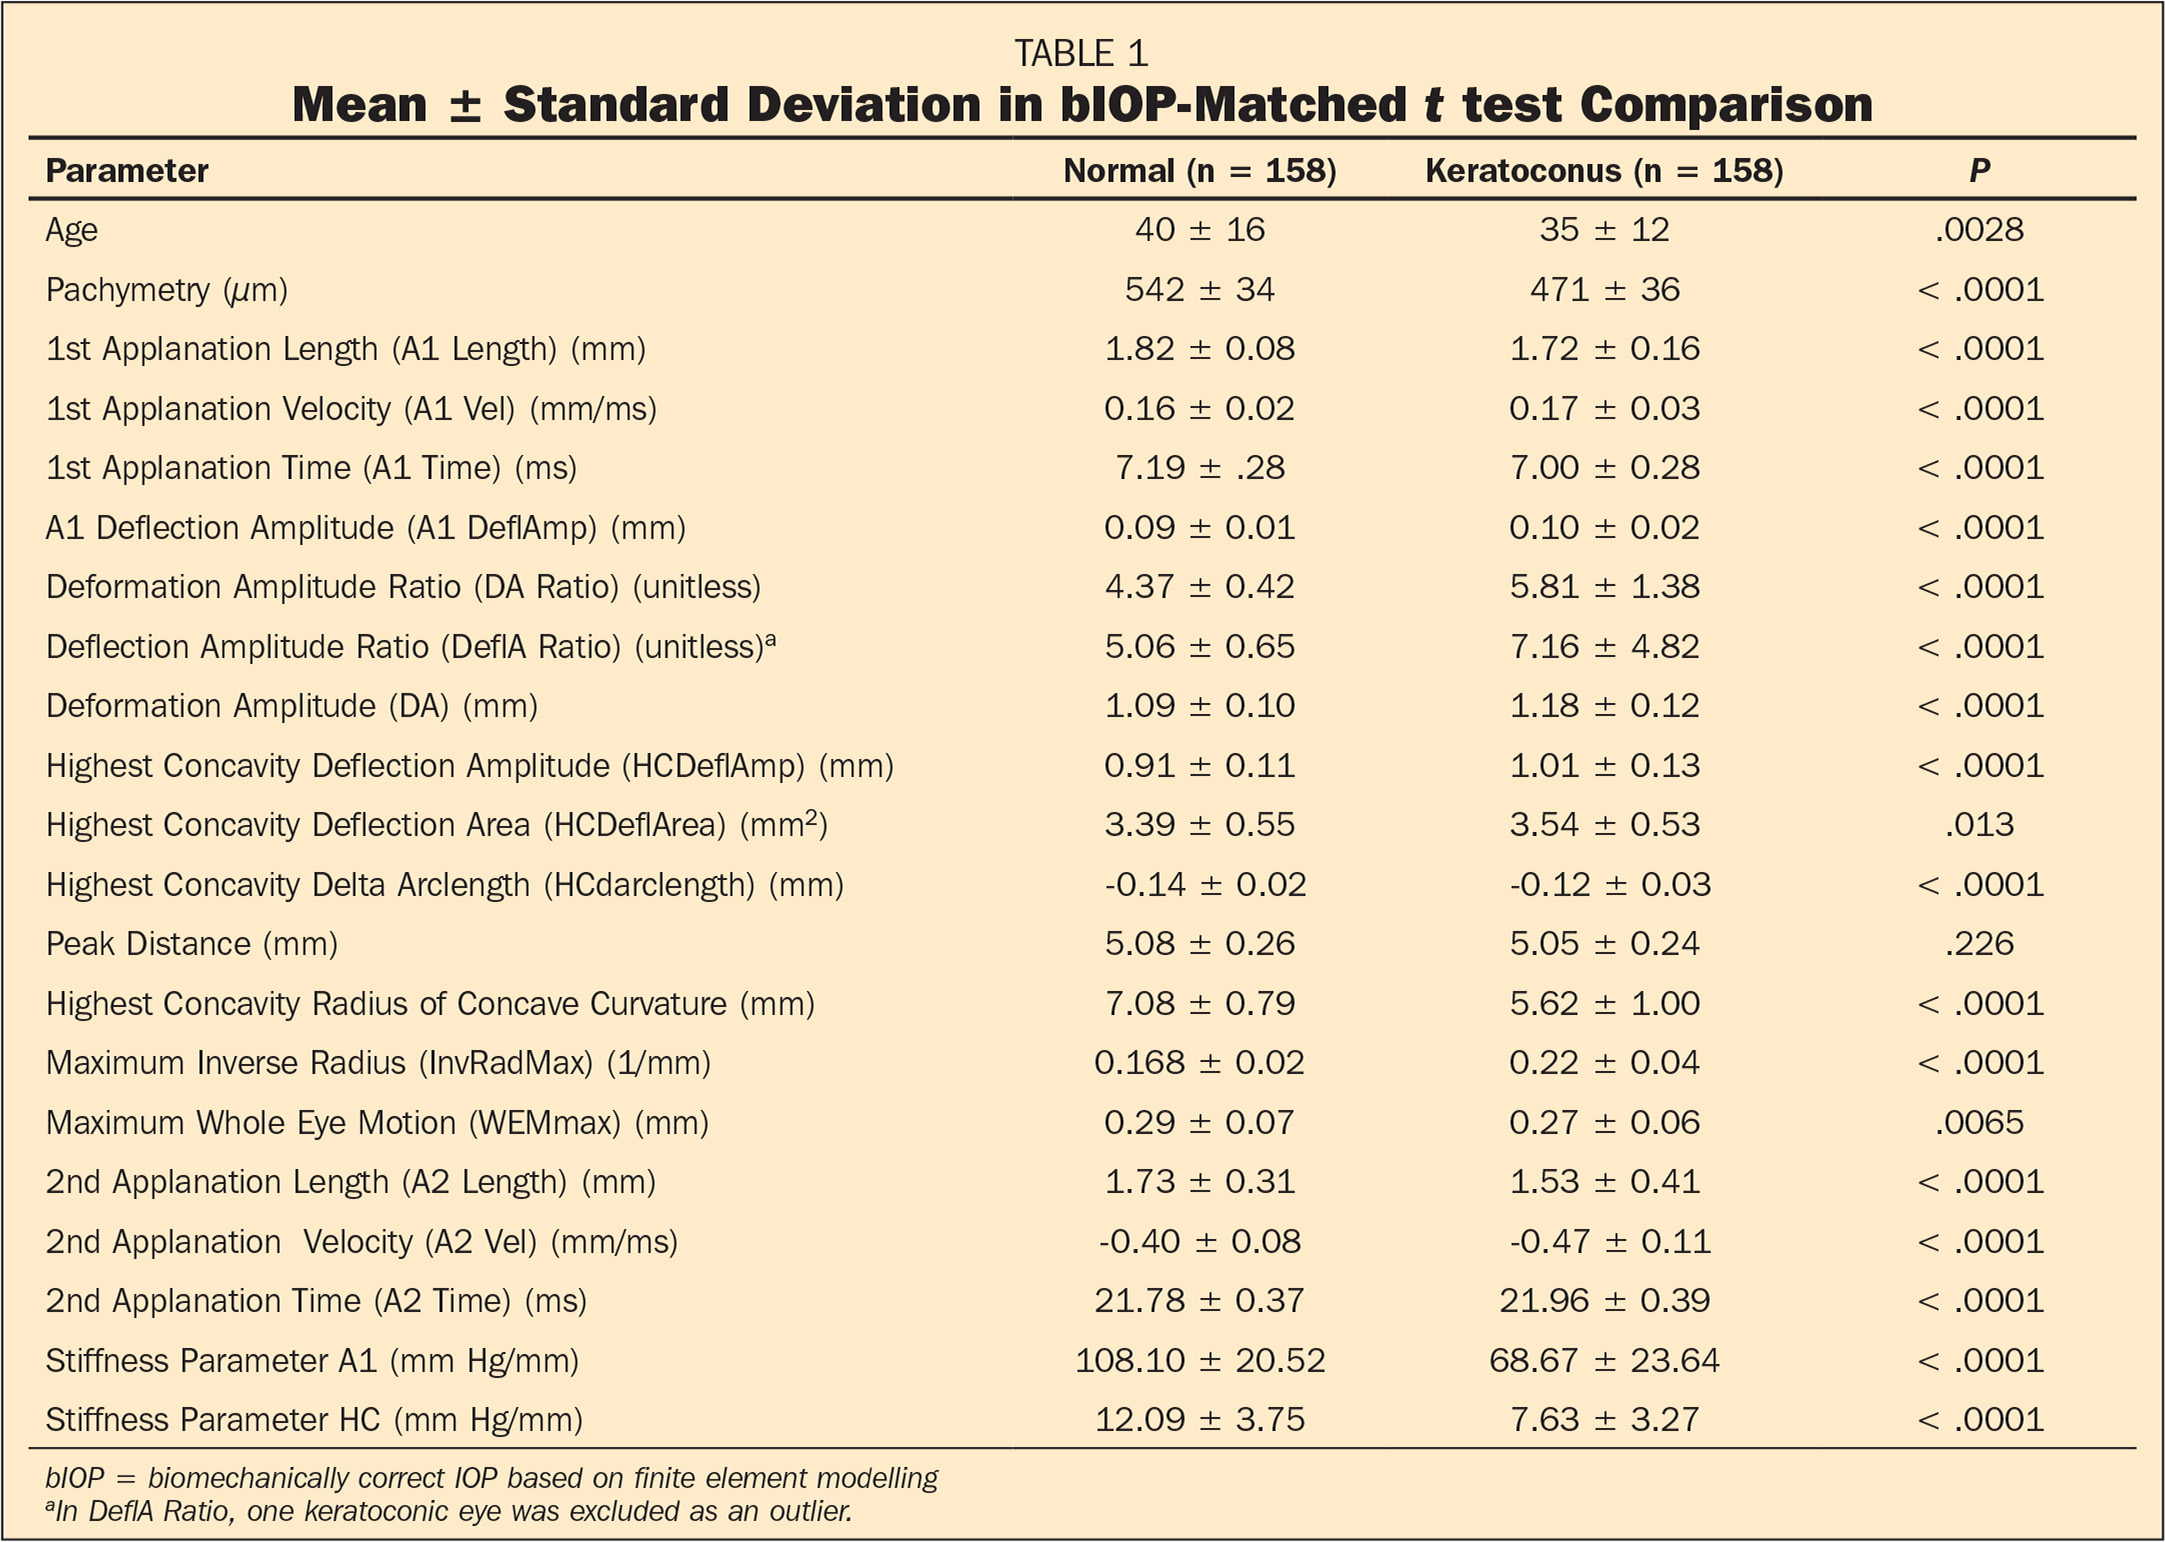 Mean ± Standard Deviation in bIOP-Matched t test Comparison